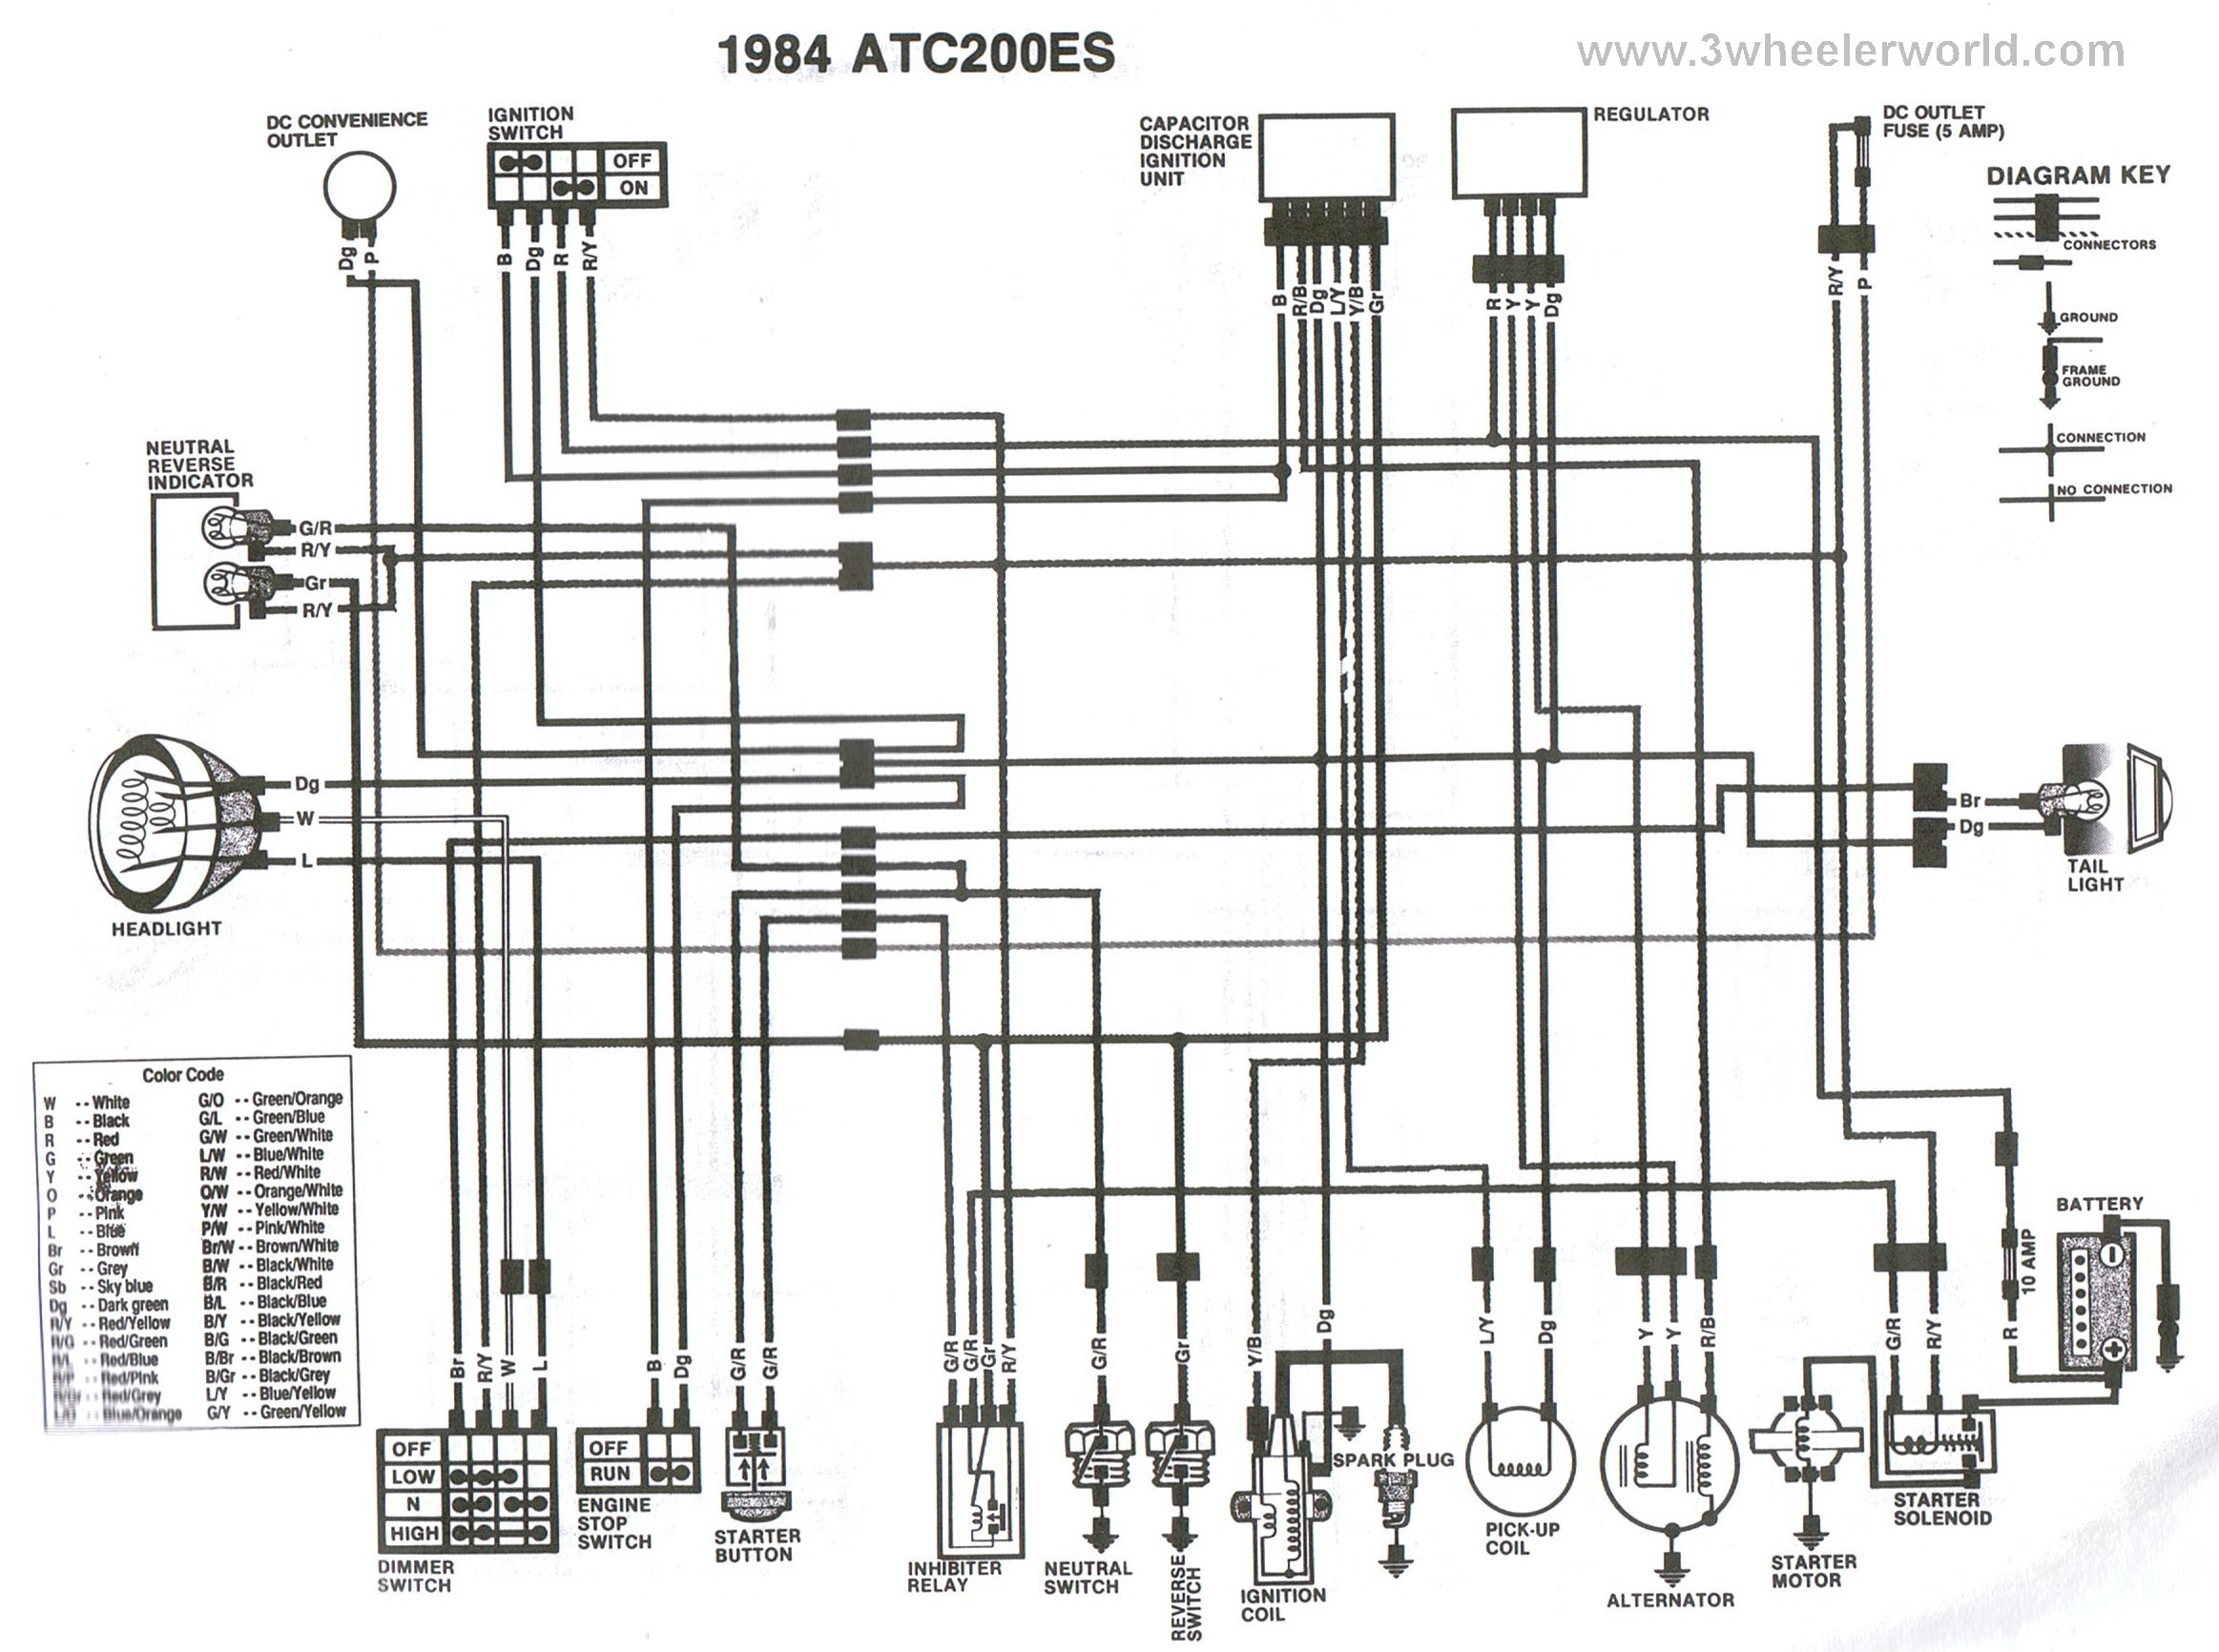 ATC200ESx84 3 wheeler world tech help honda wiring diagrams honda big red wiring diagram at bayanpartner.co